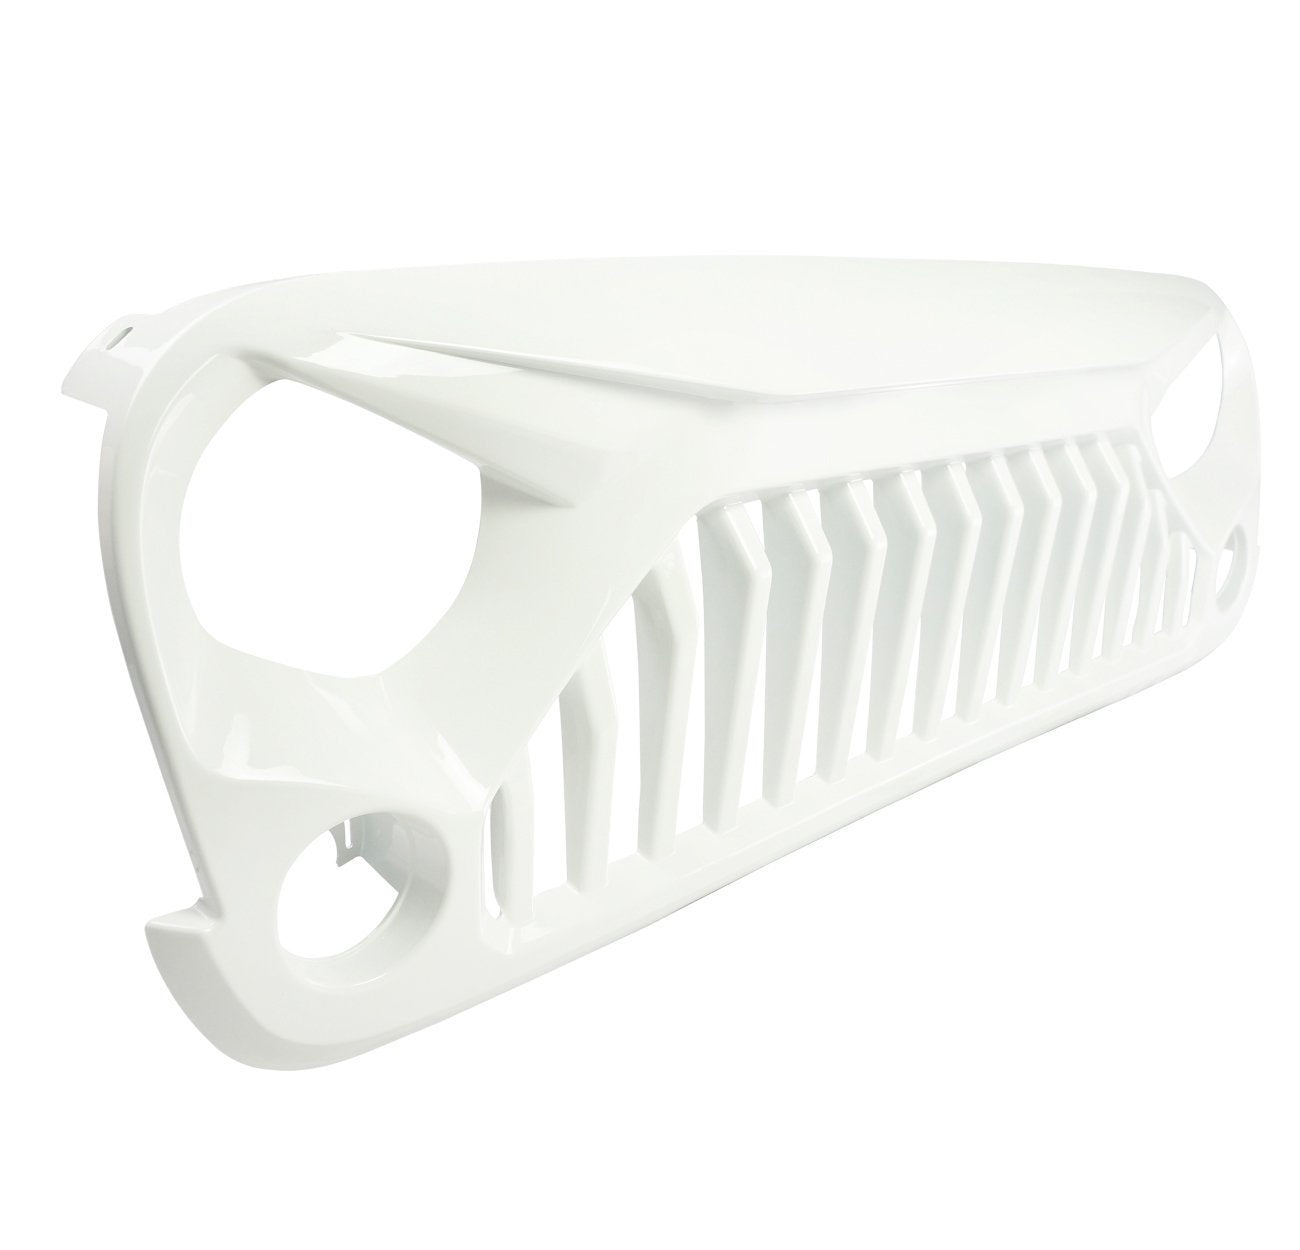 Gladiator Grille for Jeep Wrangler JK 07-18-Glossy White